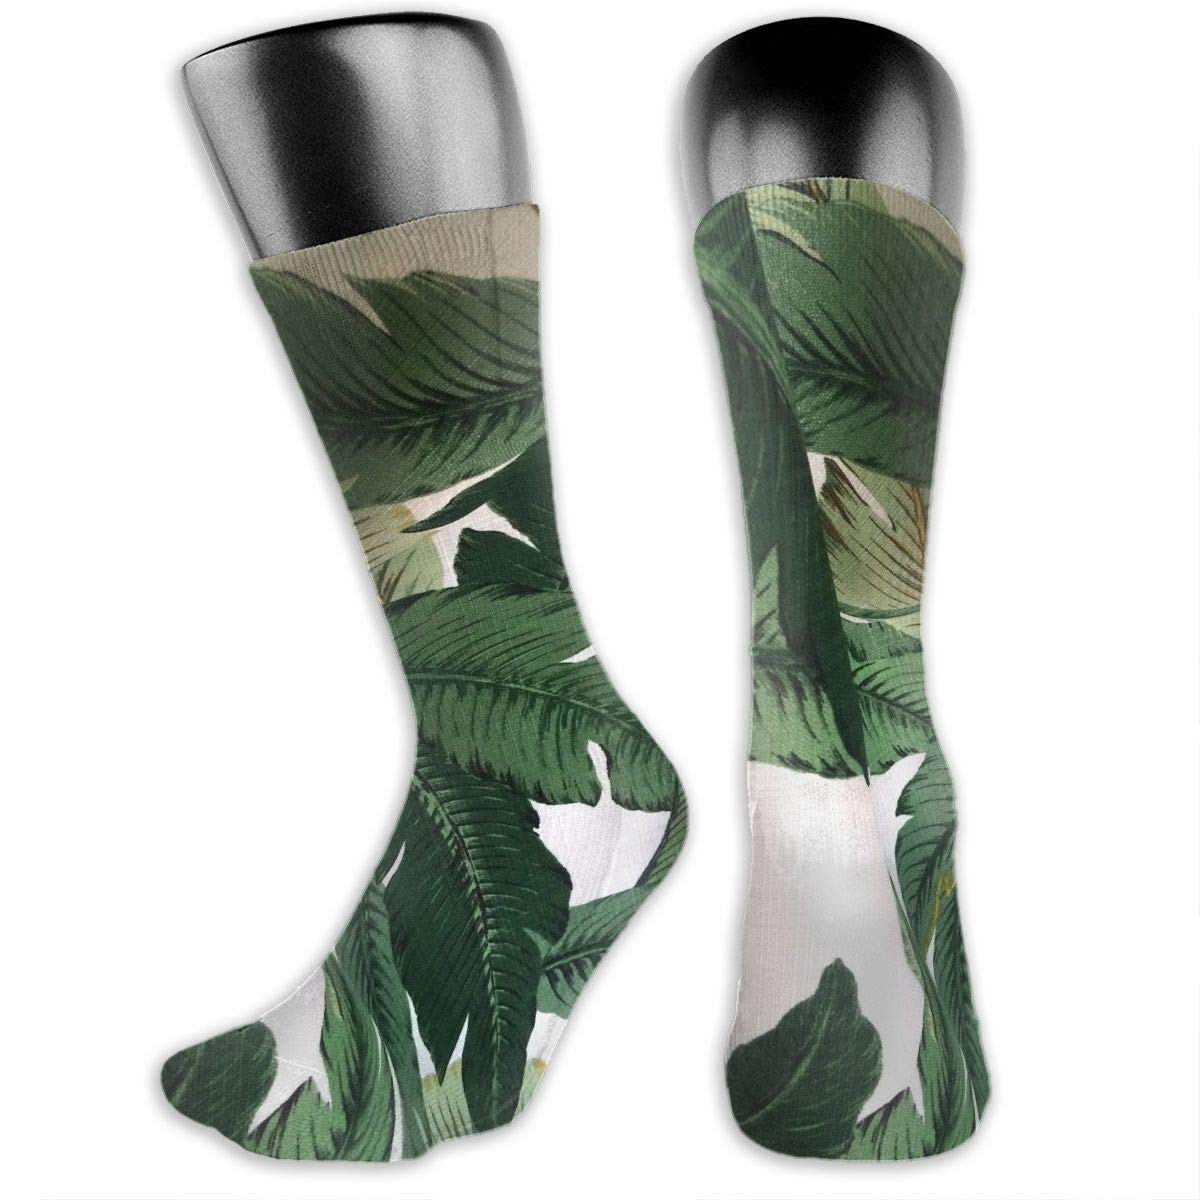 OLGCZM Dark Green Palm Banana Leaves Men Womens Thin High Ankle Casual Socks Fit Outdoor Hiking Trail